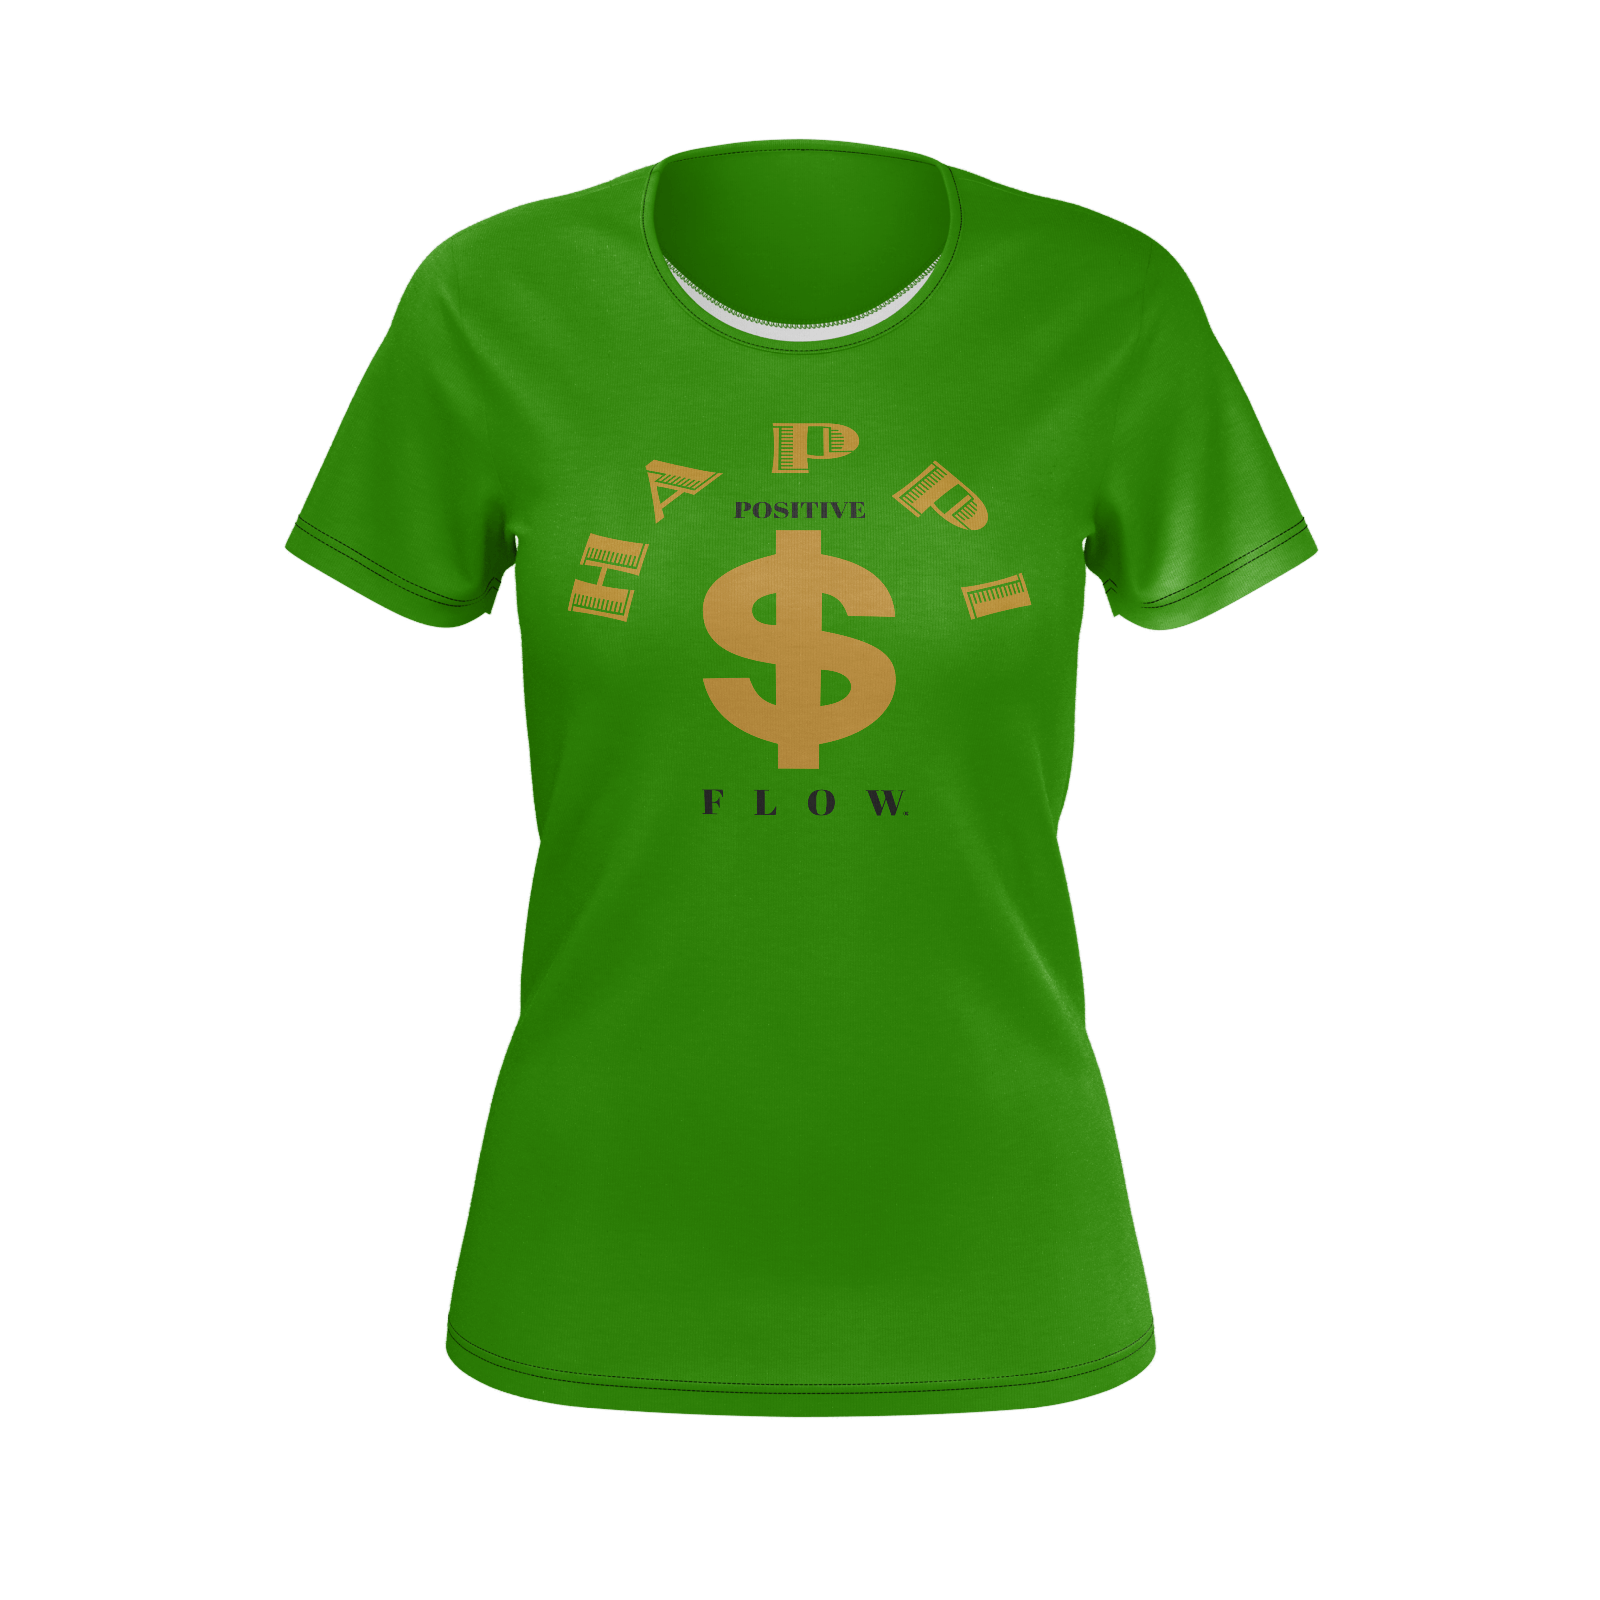 MHP Happi Positive Cash Flow Tee for Women Money Green/Gold/Black 100% Pima Cotton